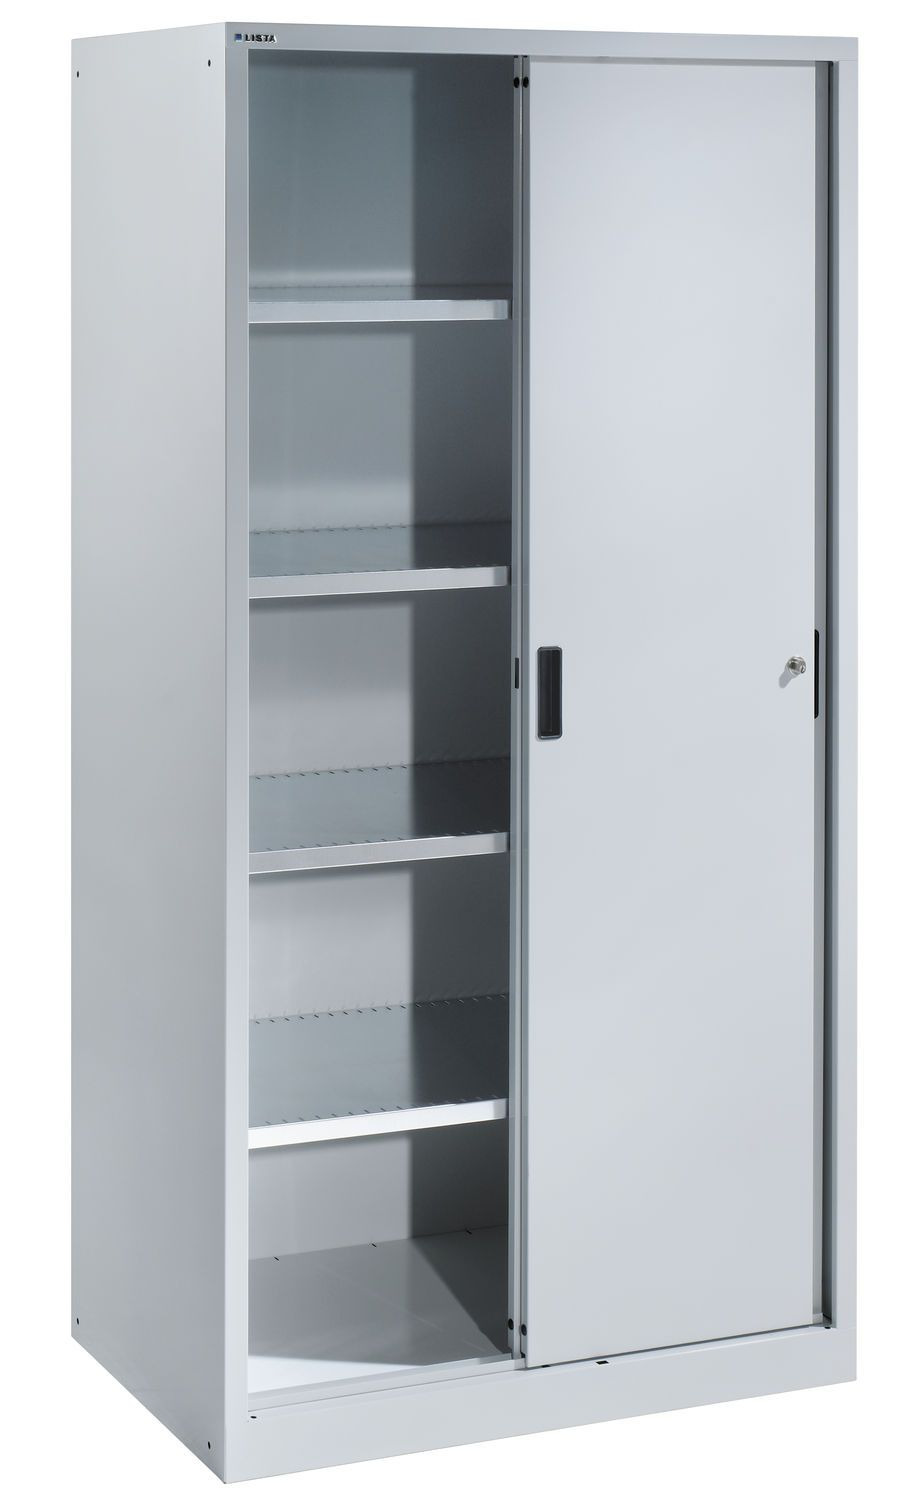 Sliding Door Cabinets Beautiful Awe Inspiring Storage Cabinets with Doors Also Adjustable